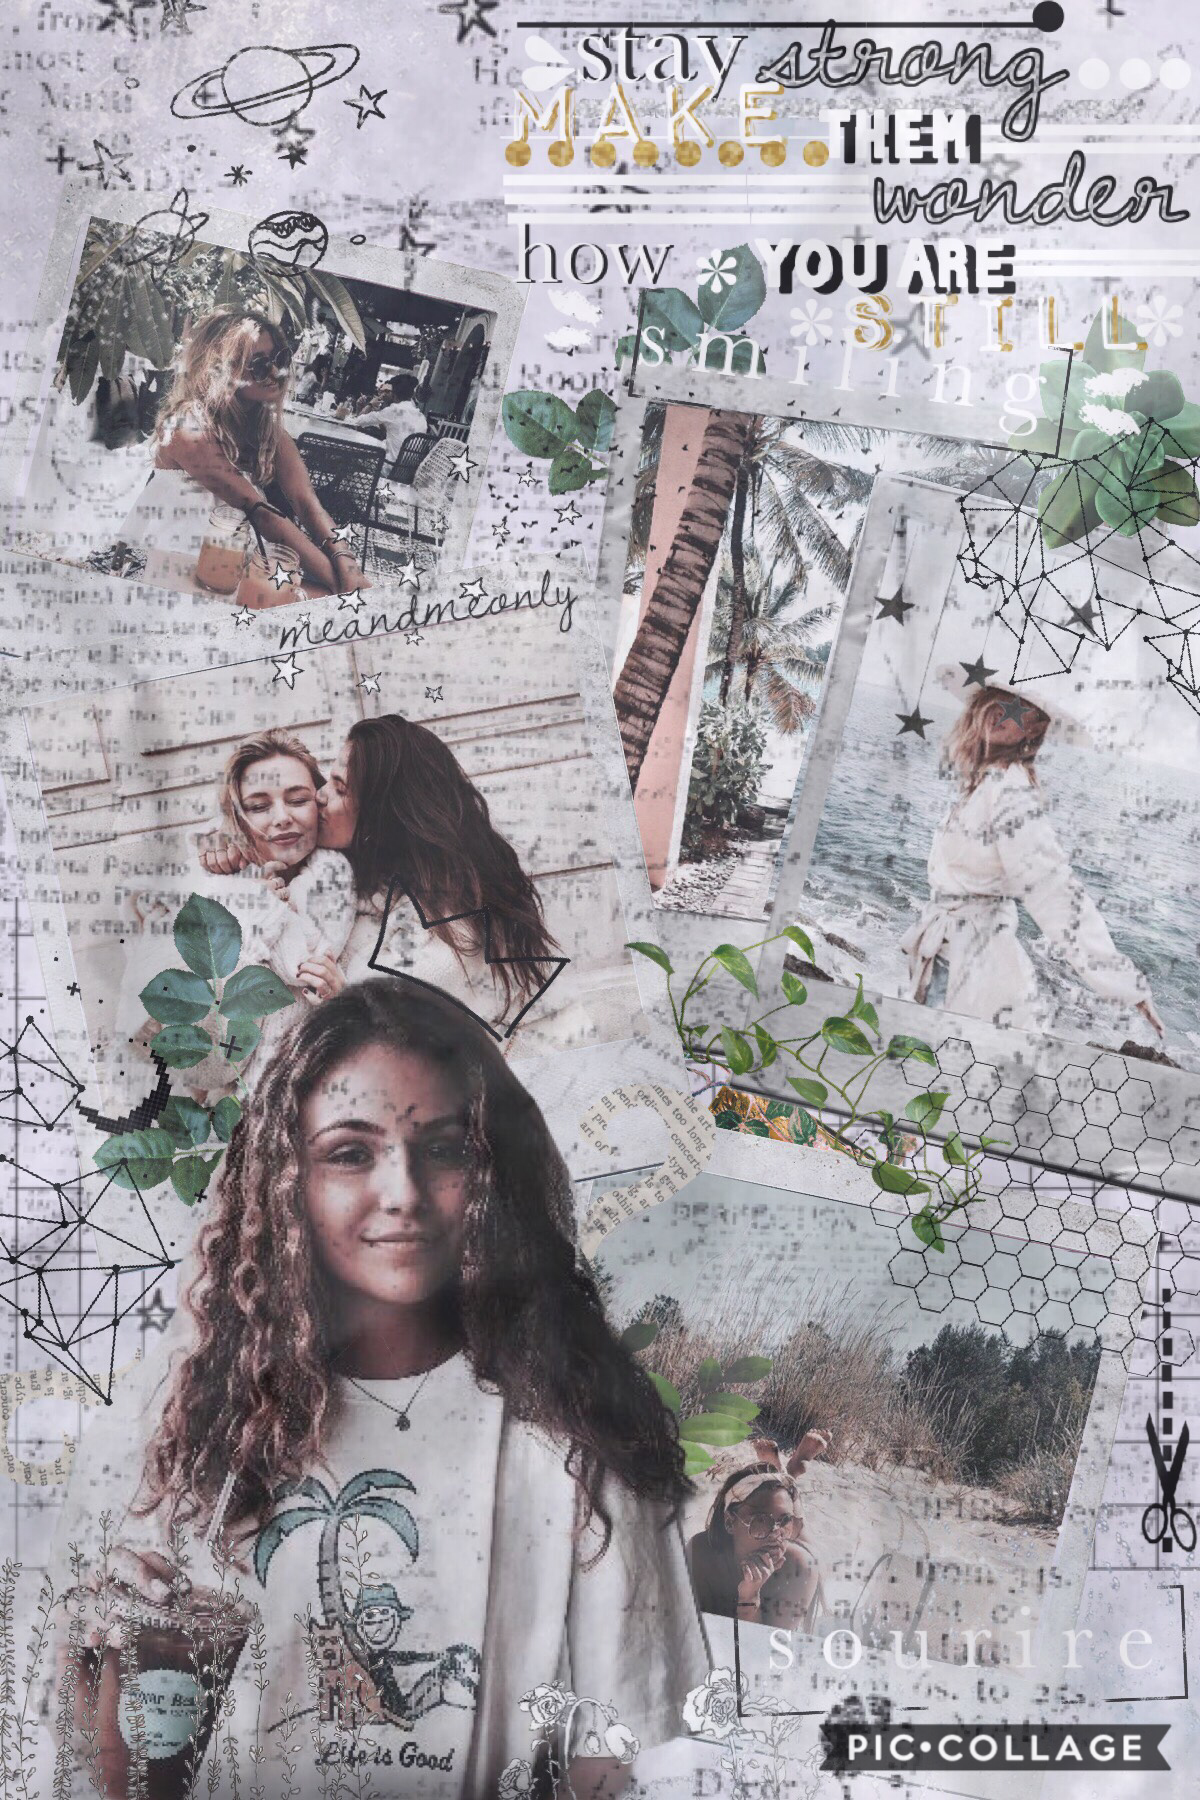 holaaa! sorry I haven't posted in while, schools keeping me really busy :( how's everyone's day? ❤️ QOTD: anyone know what sourire mean? (it's on the bottom right corner of the collage? AOTD: I'm asking you!!💓☺️